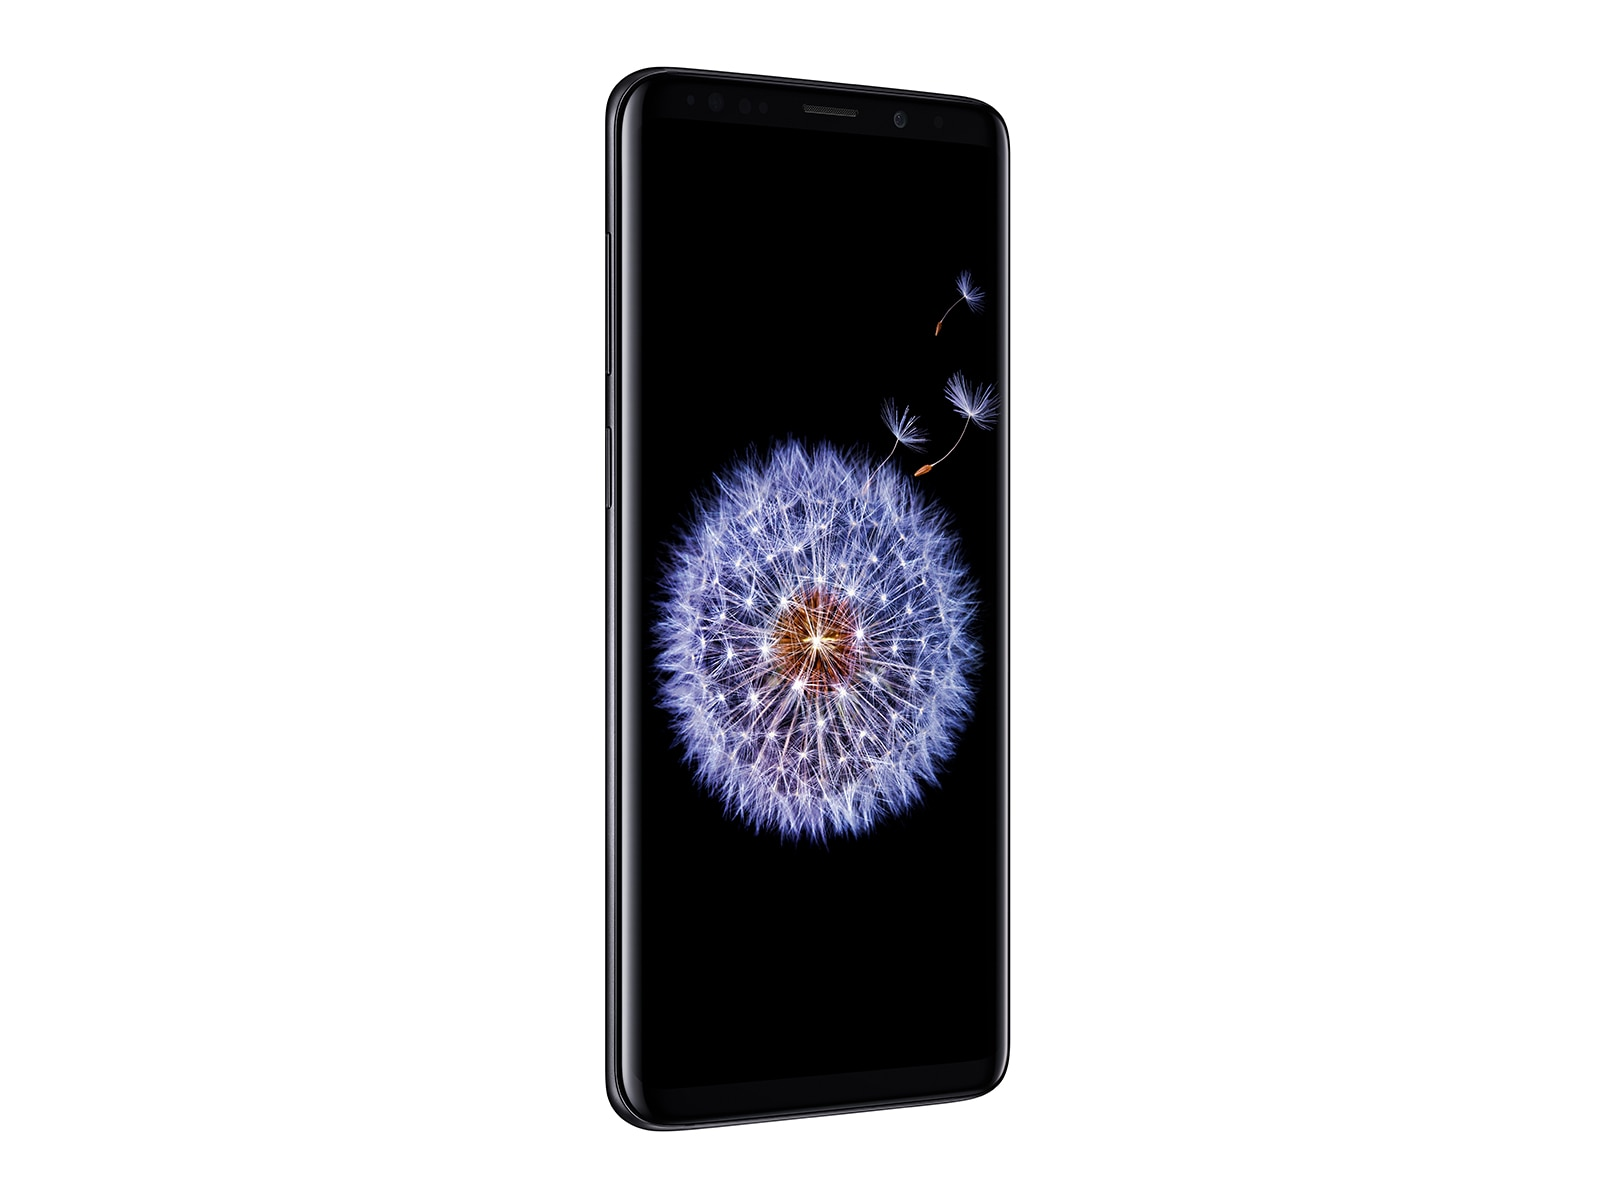 Thumbnail image of Galaxy S9+ 64GB (Unlocked)